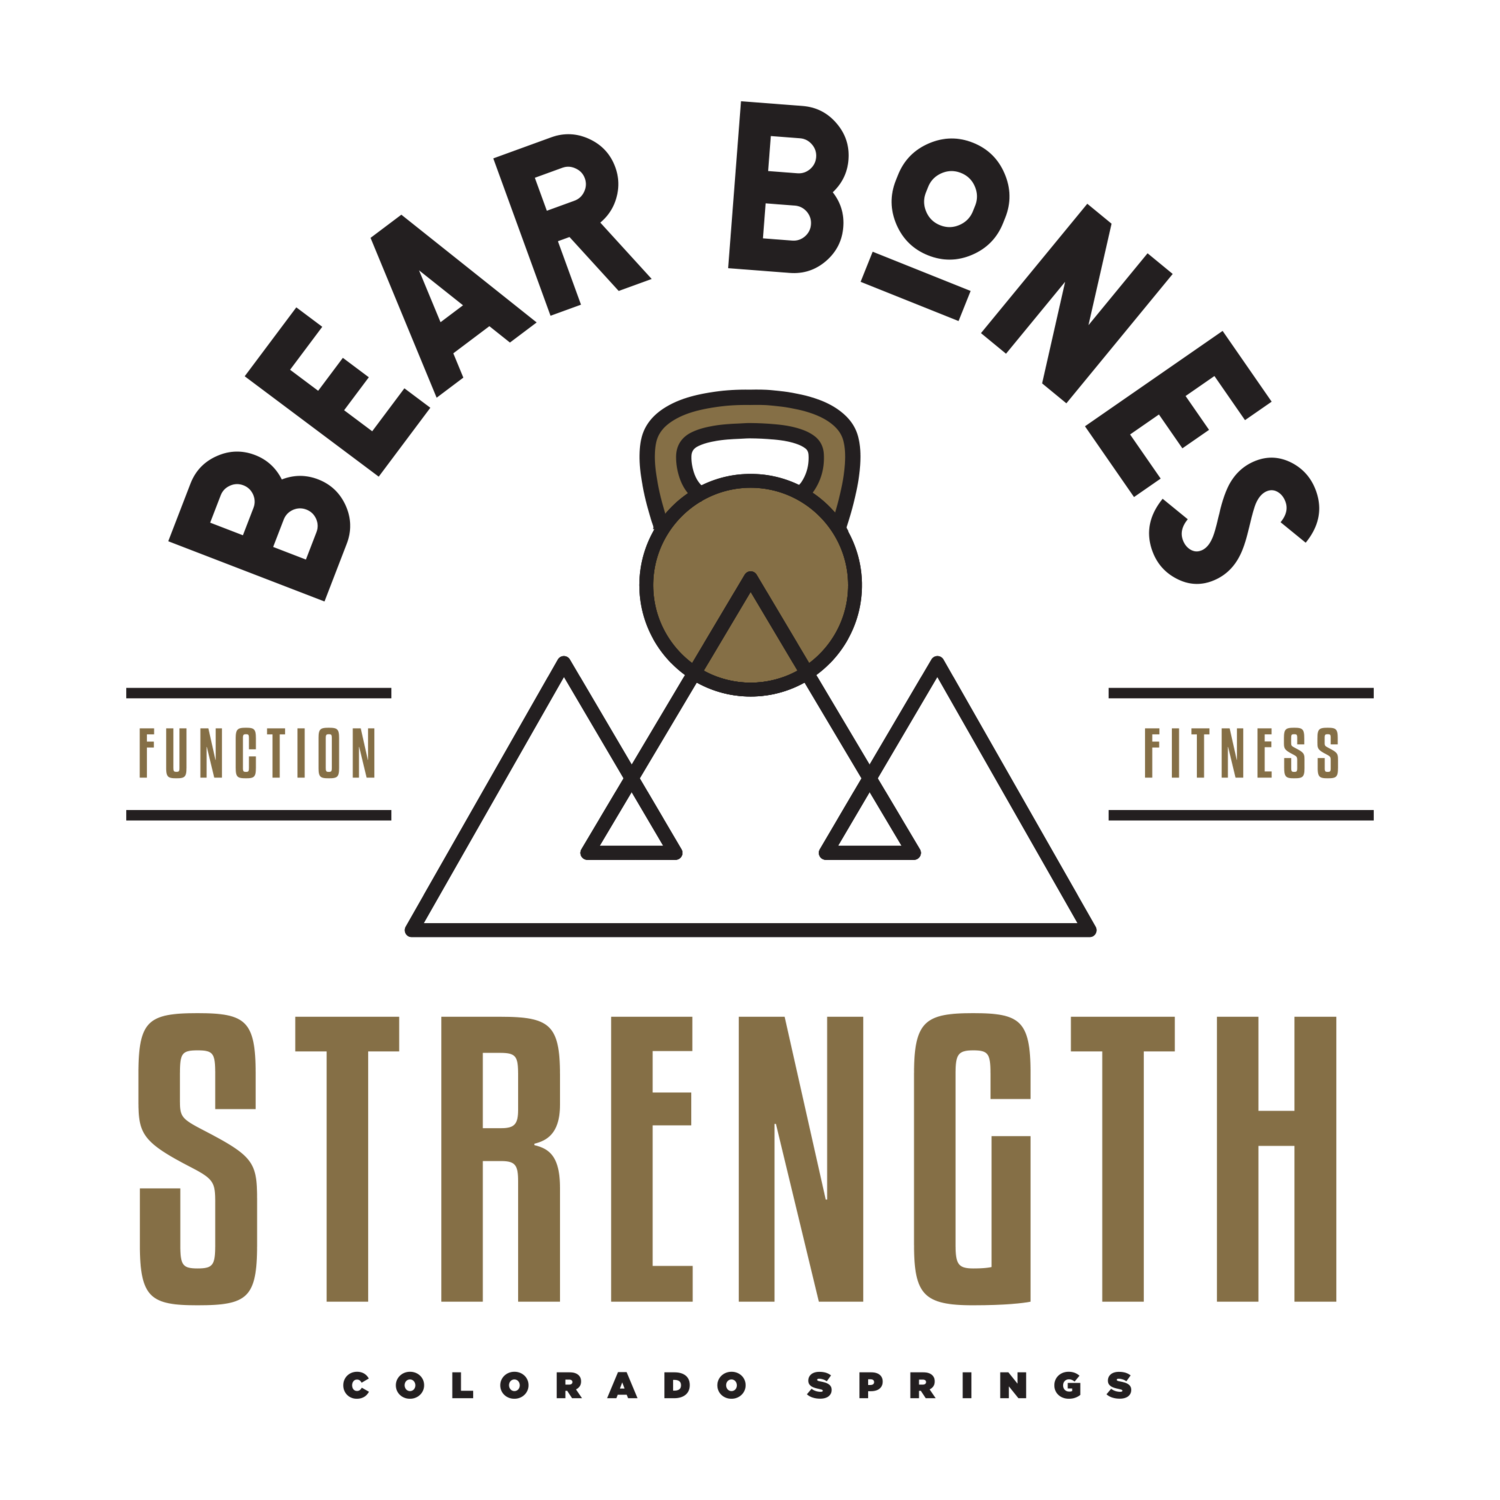 BEAR BONES STRENGTH